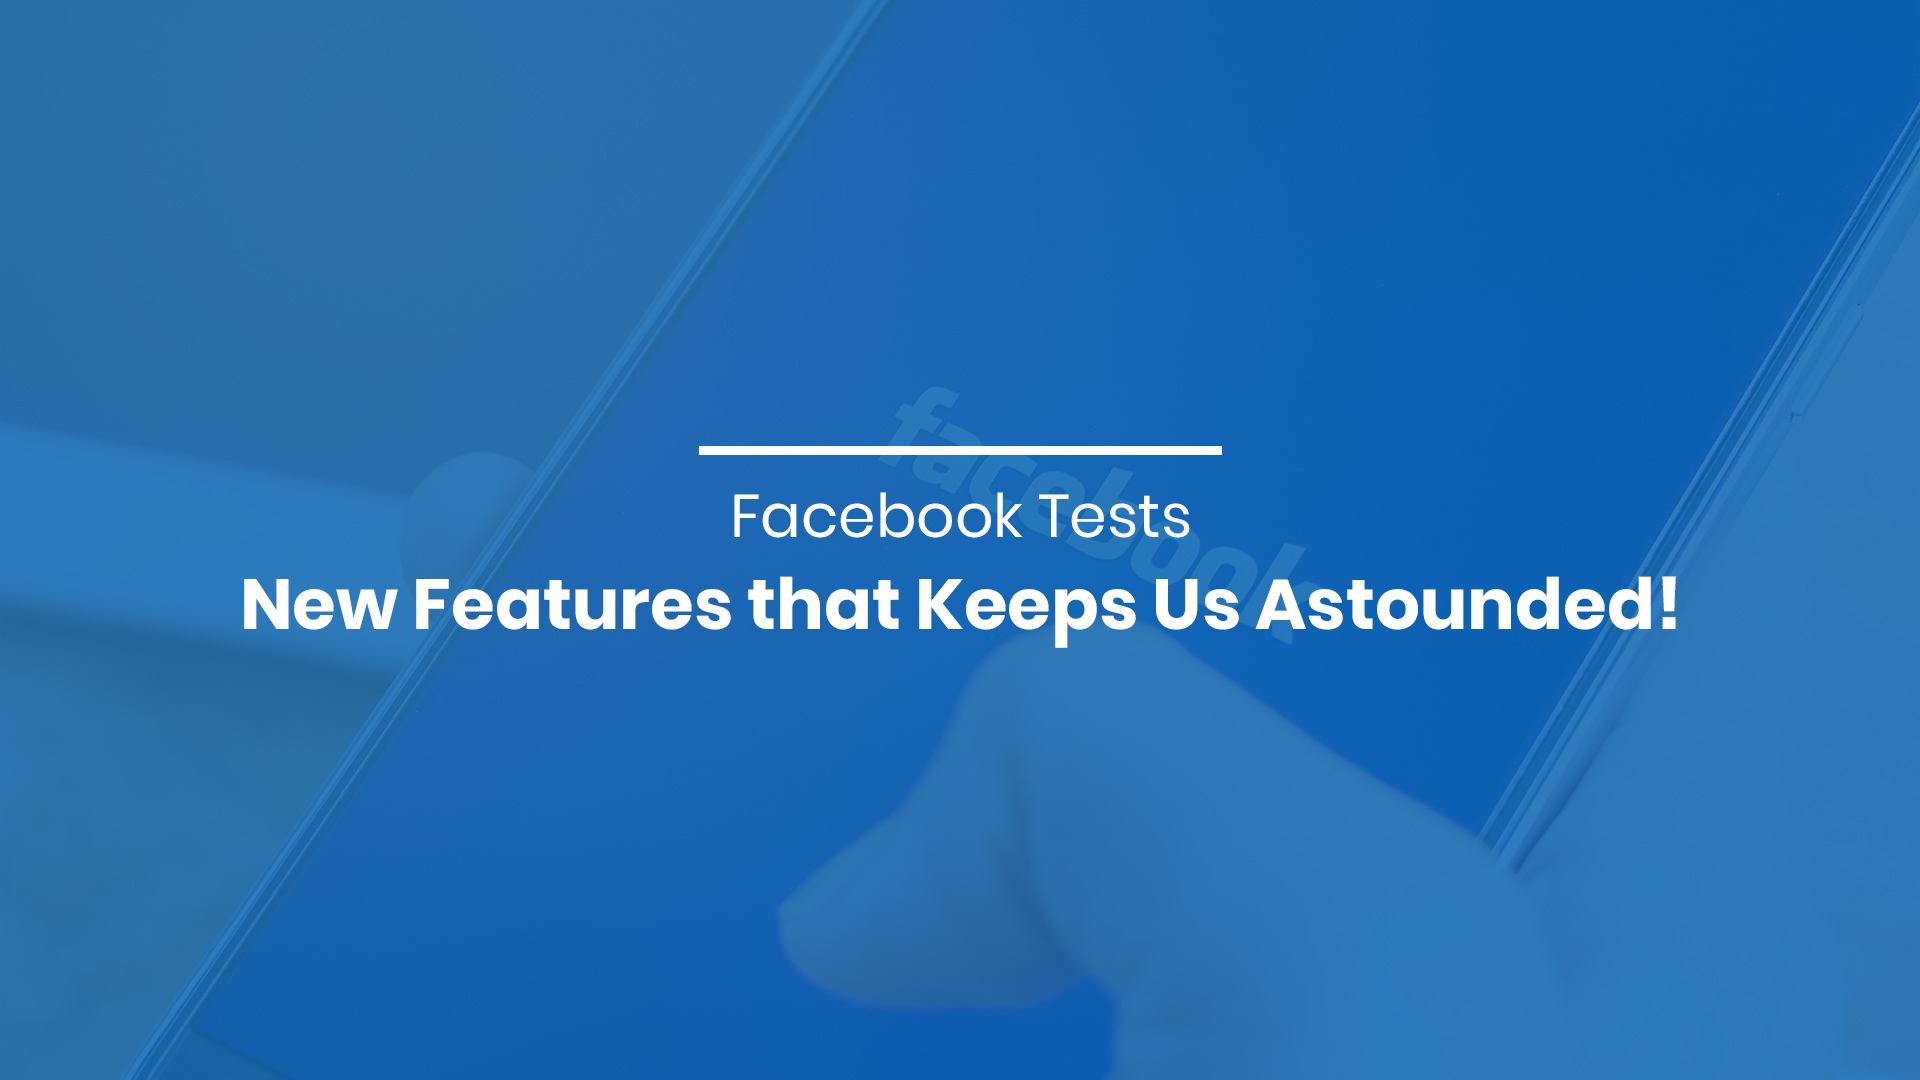 Facebook Tests New Features that Keeps Us Astounded!